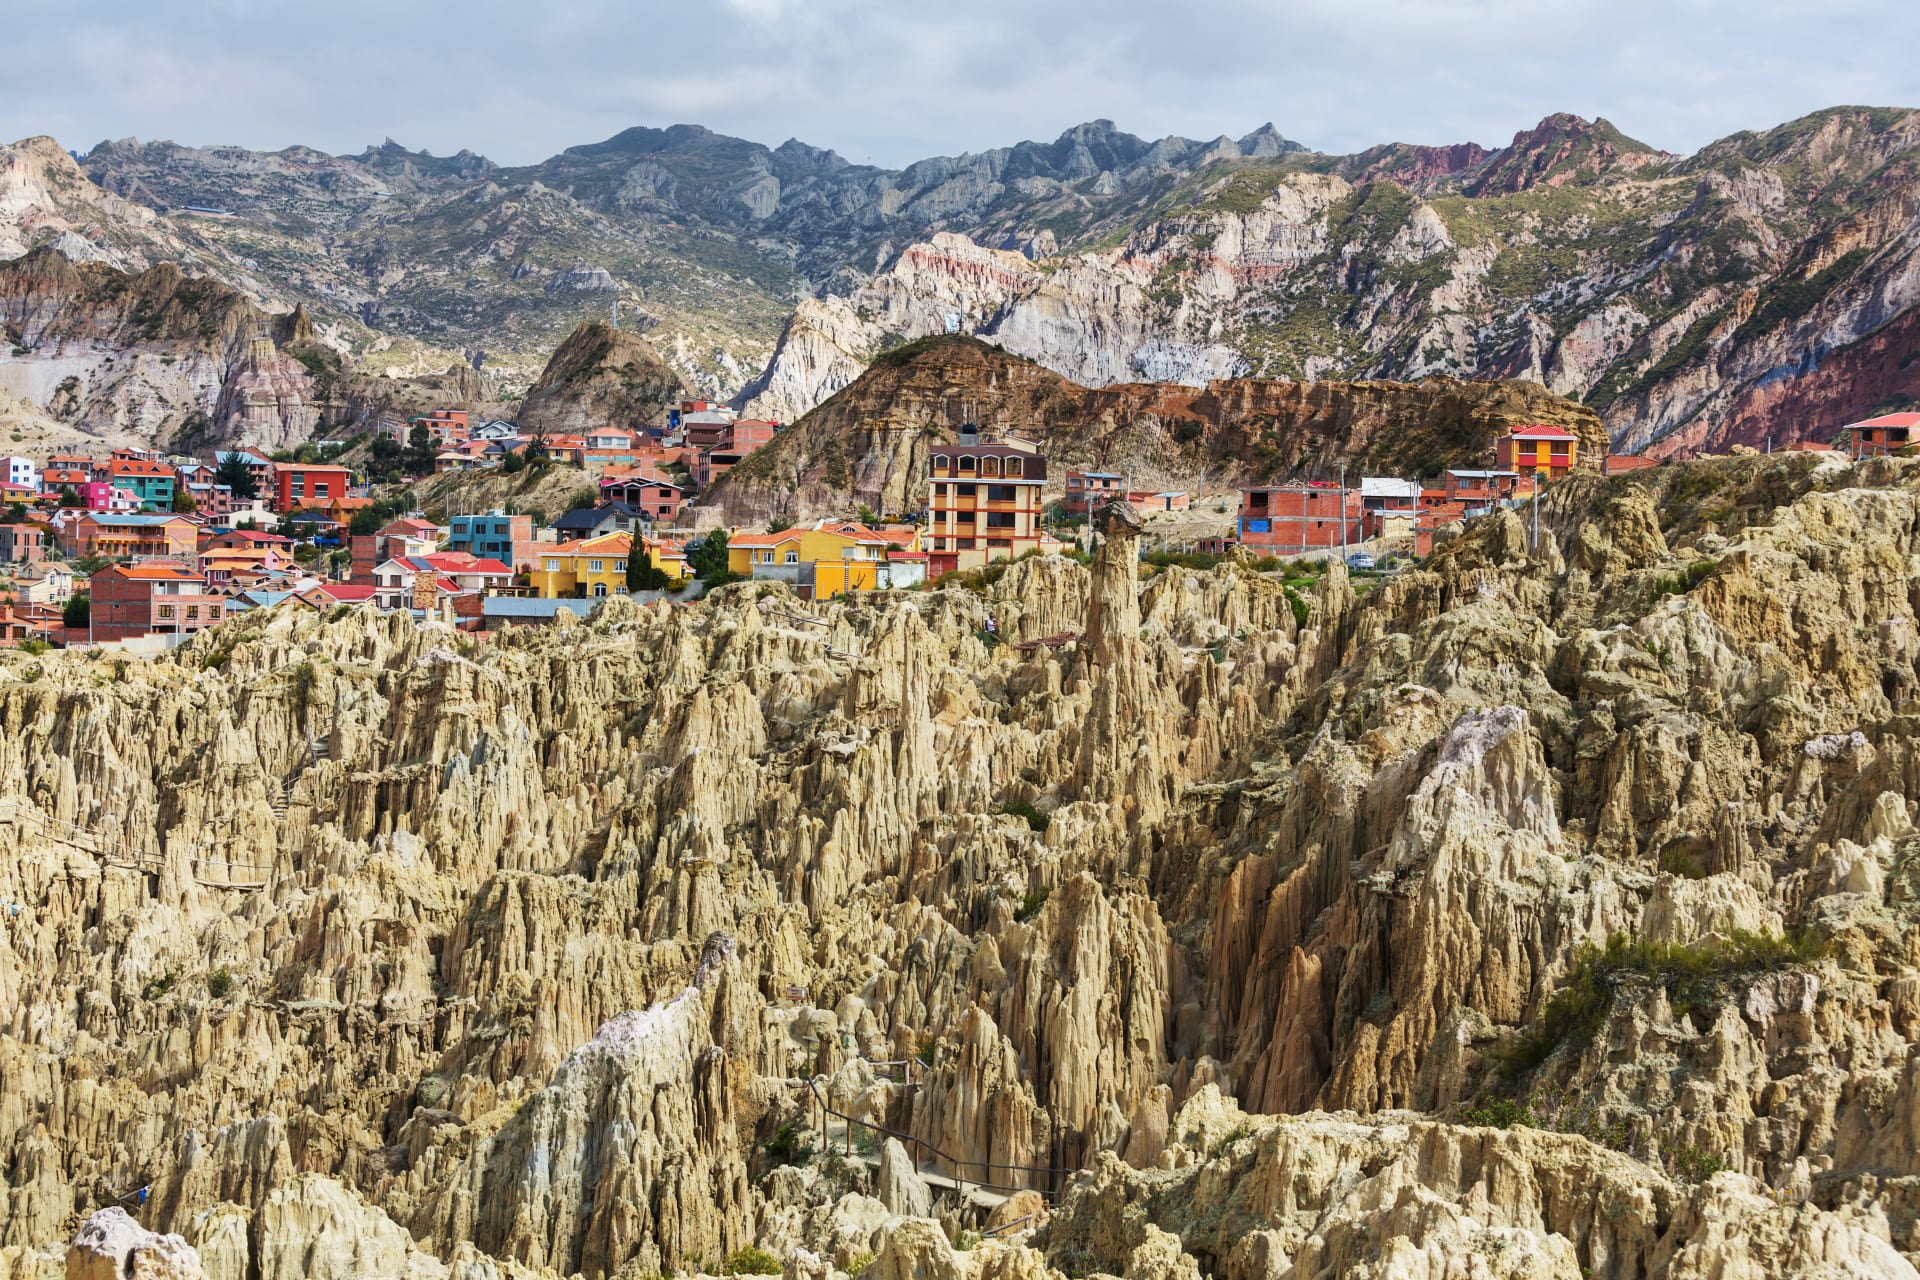 La Paz - Valley of the Moon and some Bolivian Ceramic Art